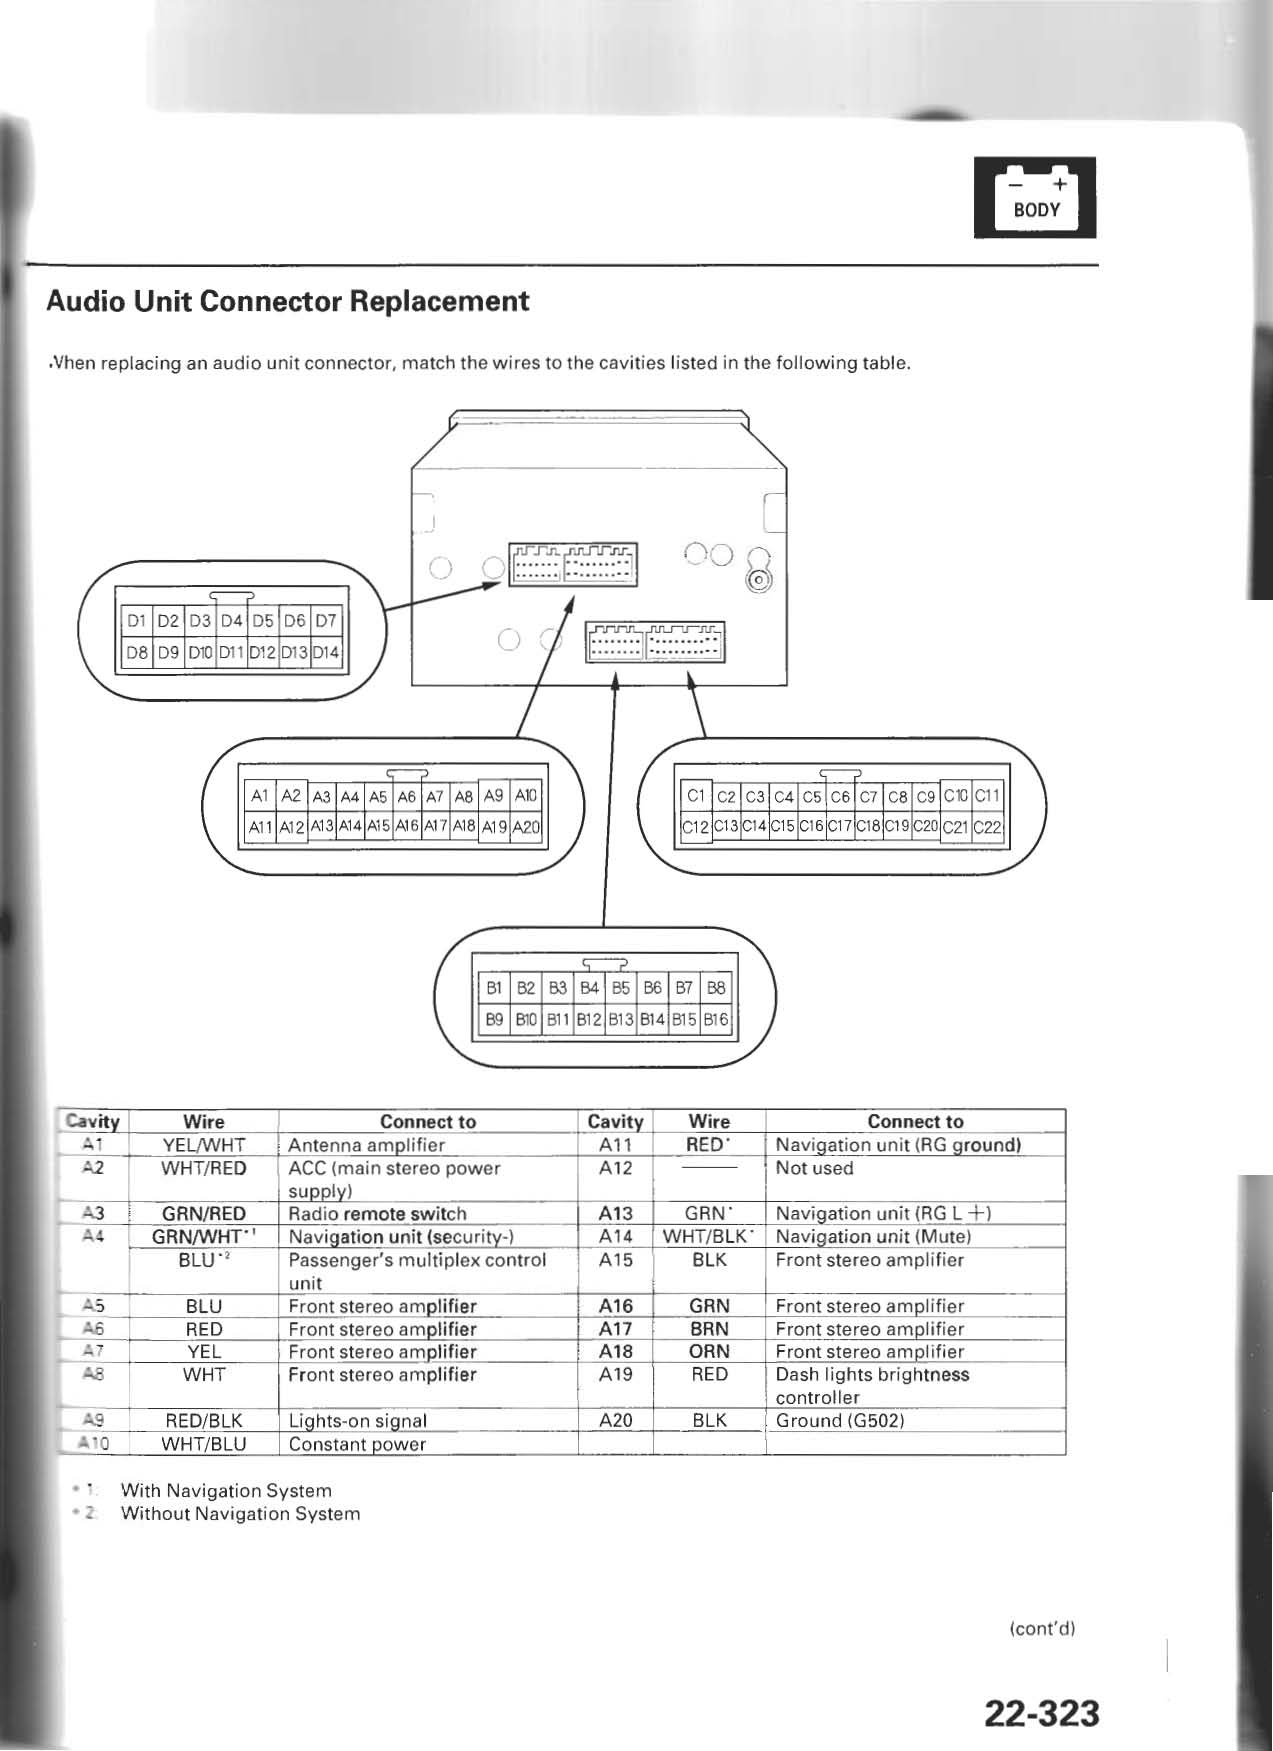 2001 Acura Mdx Wiring Diagram - Mdx Wiring Diagram Trailer Lights - 2001  Acura Mdx Wiring